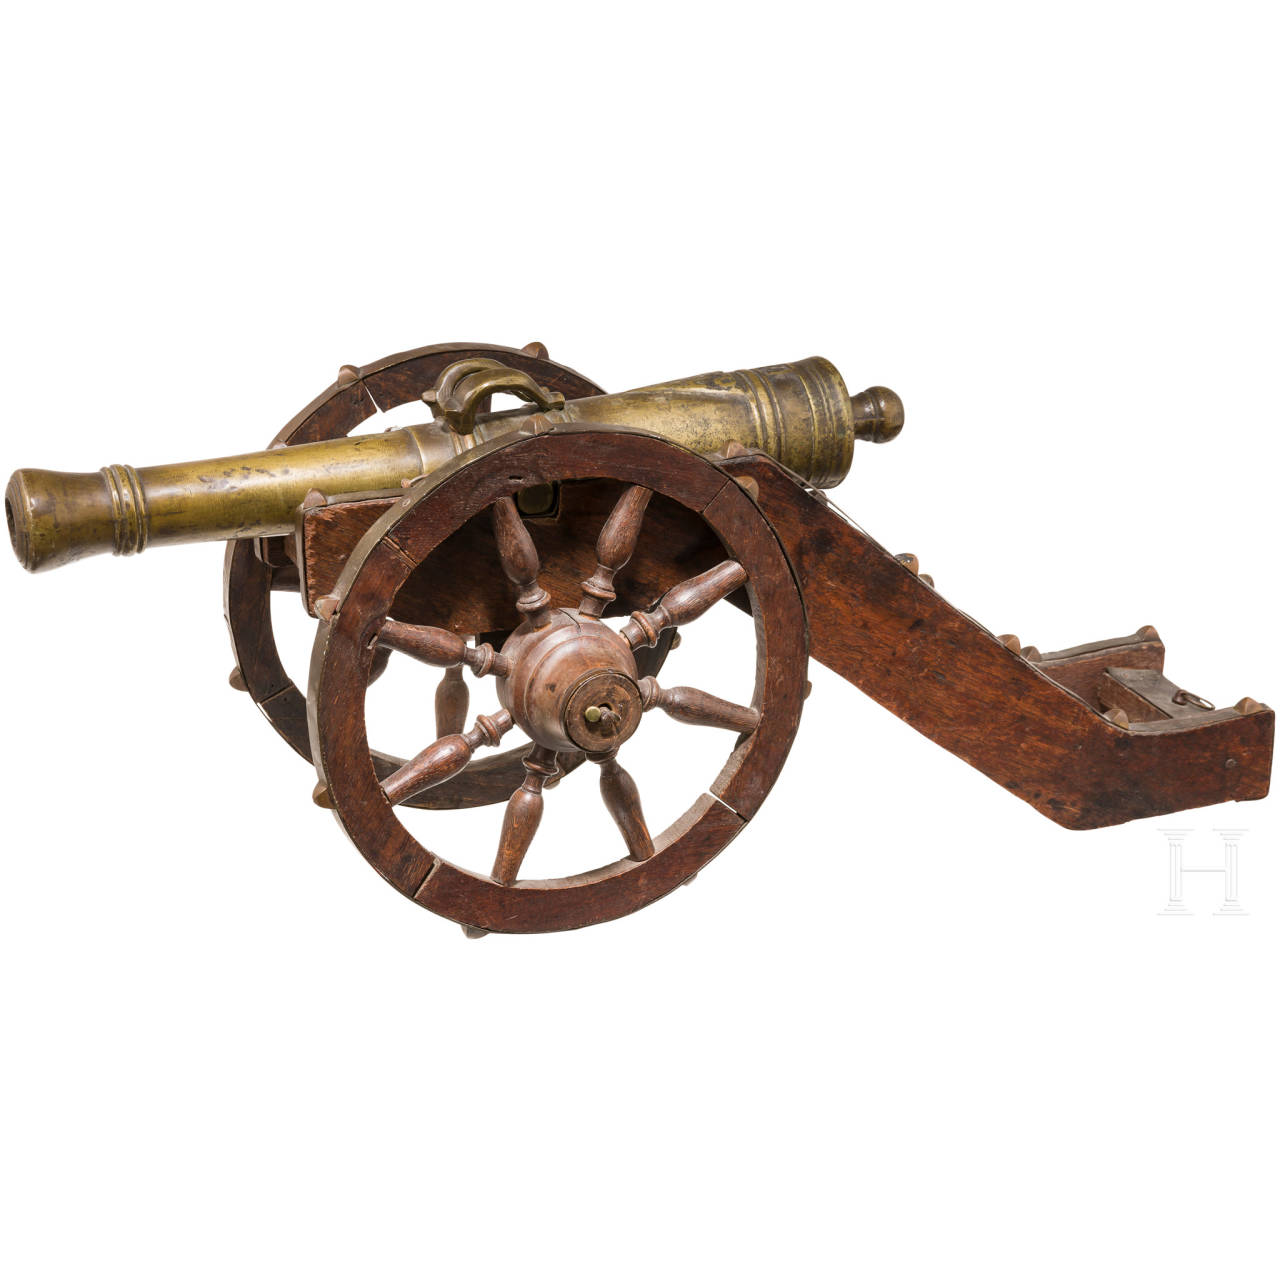 A model cannon, Germany, Historicism, ca. 1900